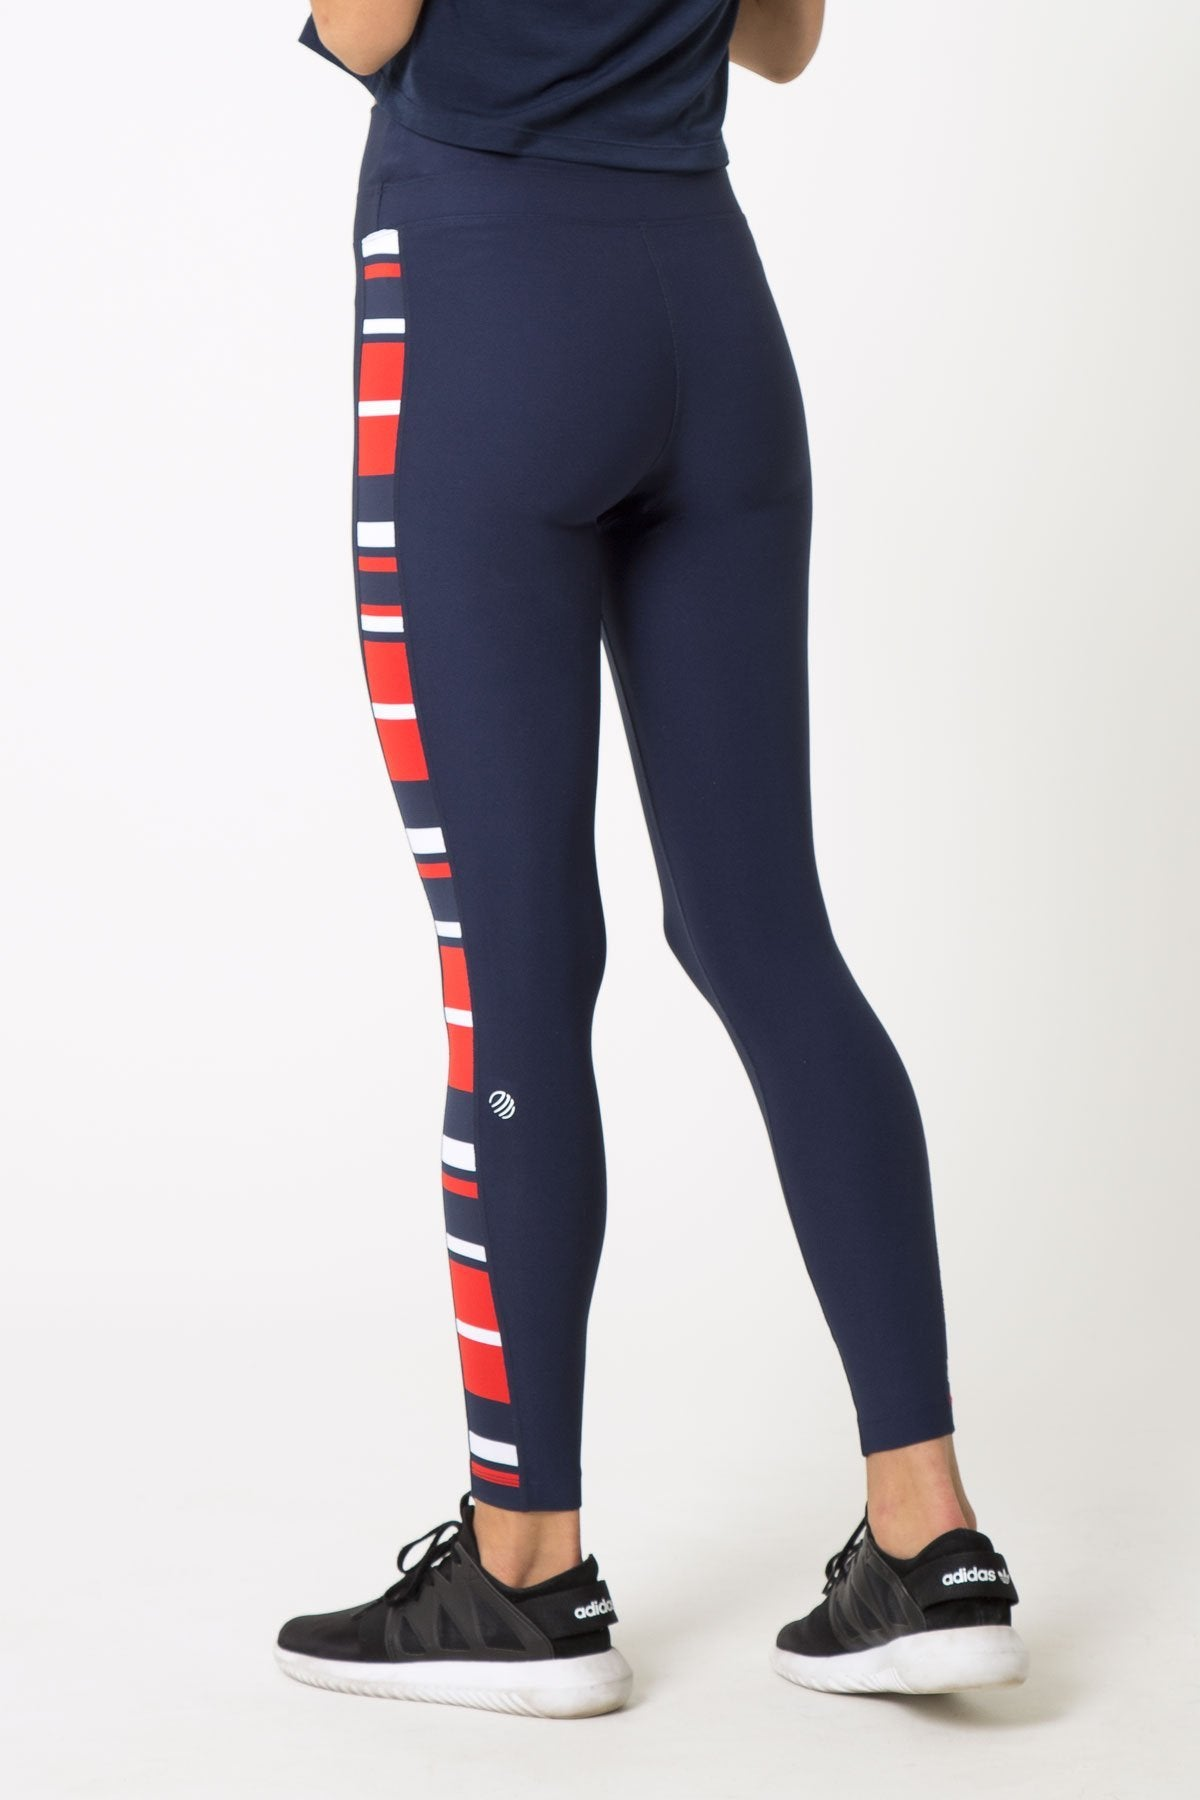 a4a516eba5dd5a Flourish 7/8 Convertible Legging – MPG Sport USA